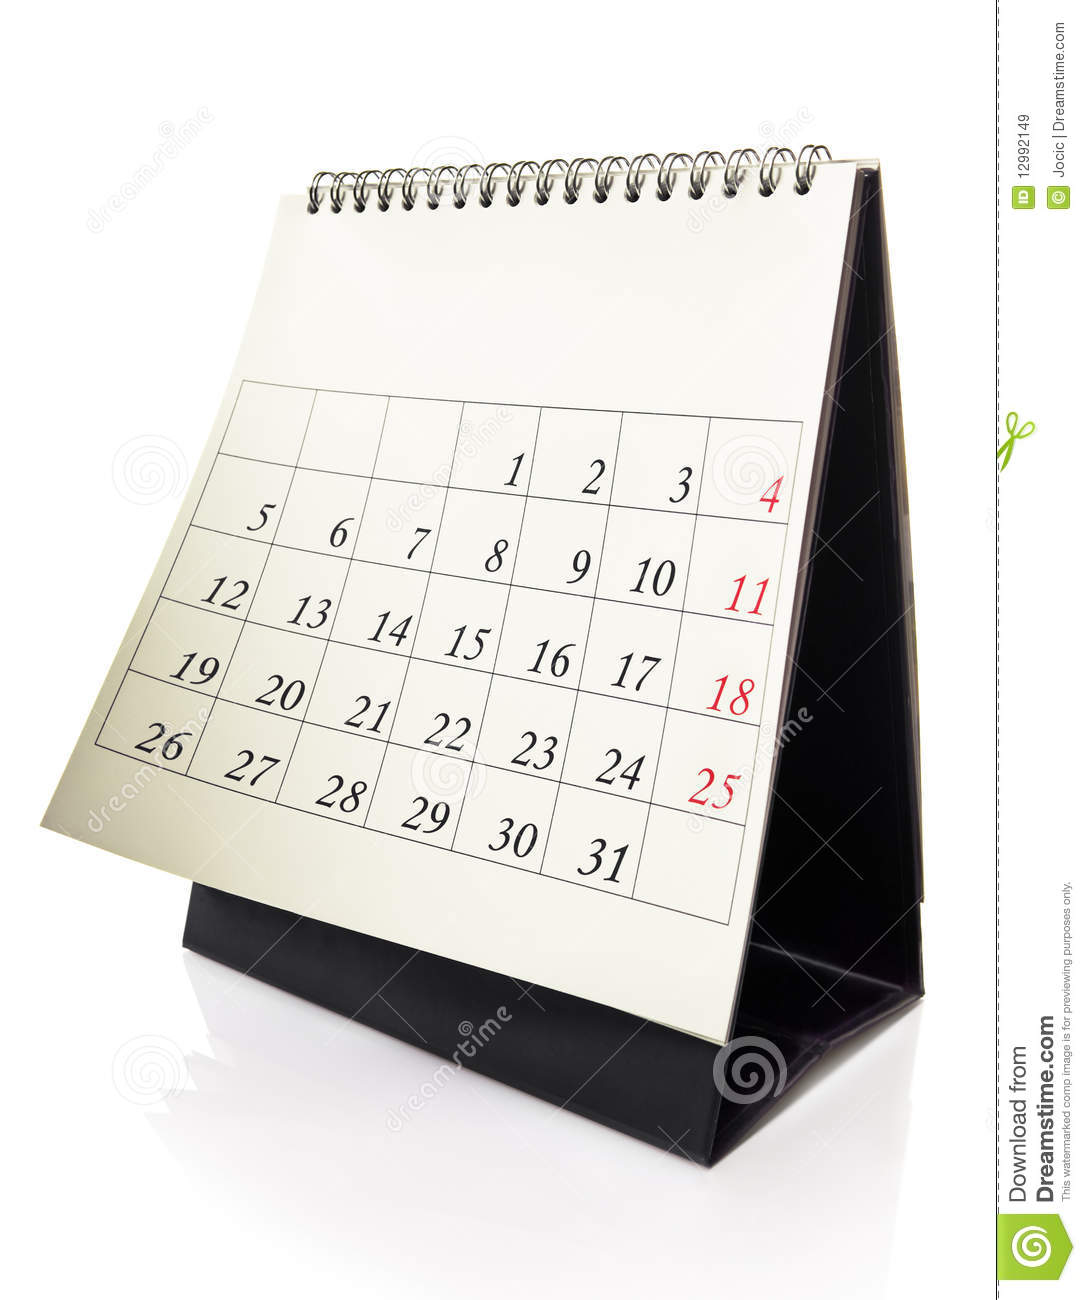 Desk Calendar Photography : Desk calendar royalty free stock images image